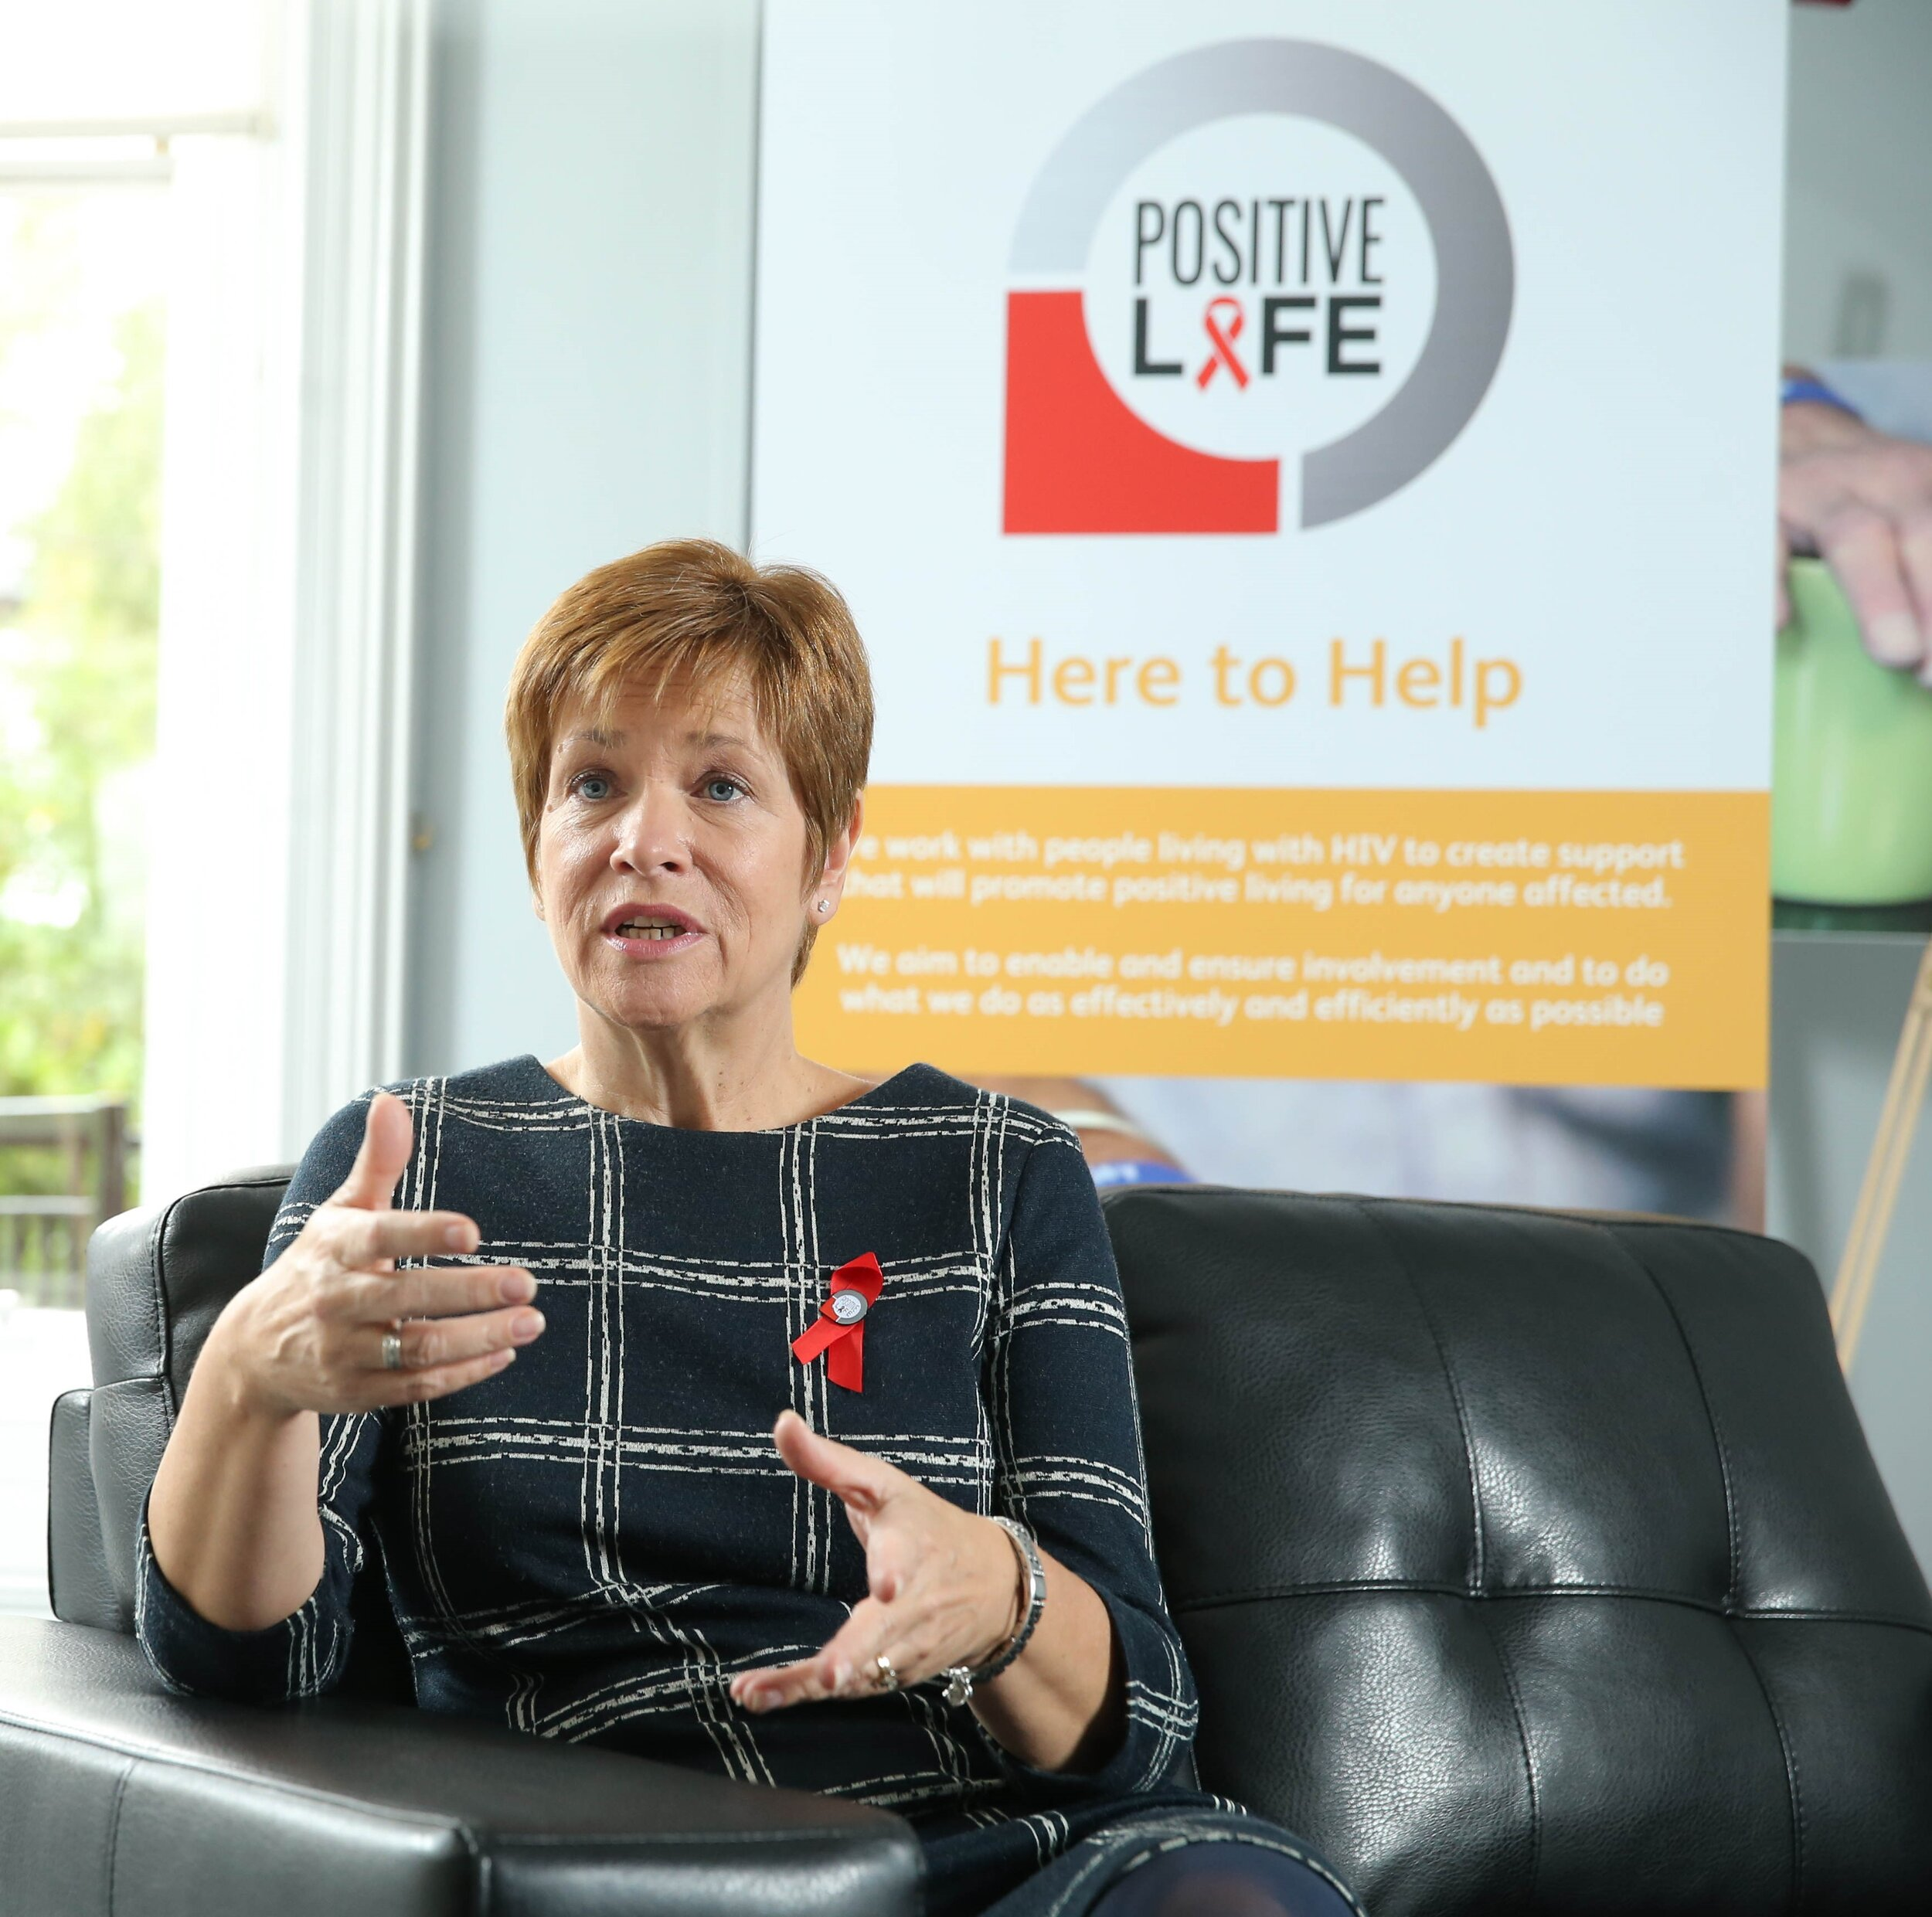 Chief Executive, Positive Life - Northern Ireland's only dedicated Charity supporting those with HIV